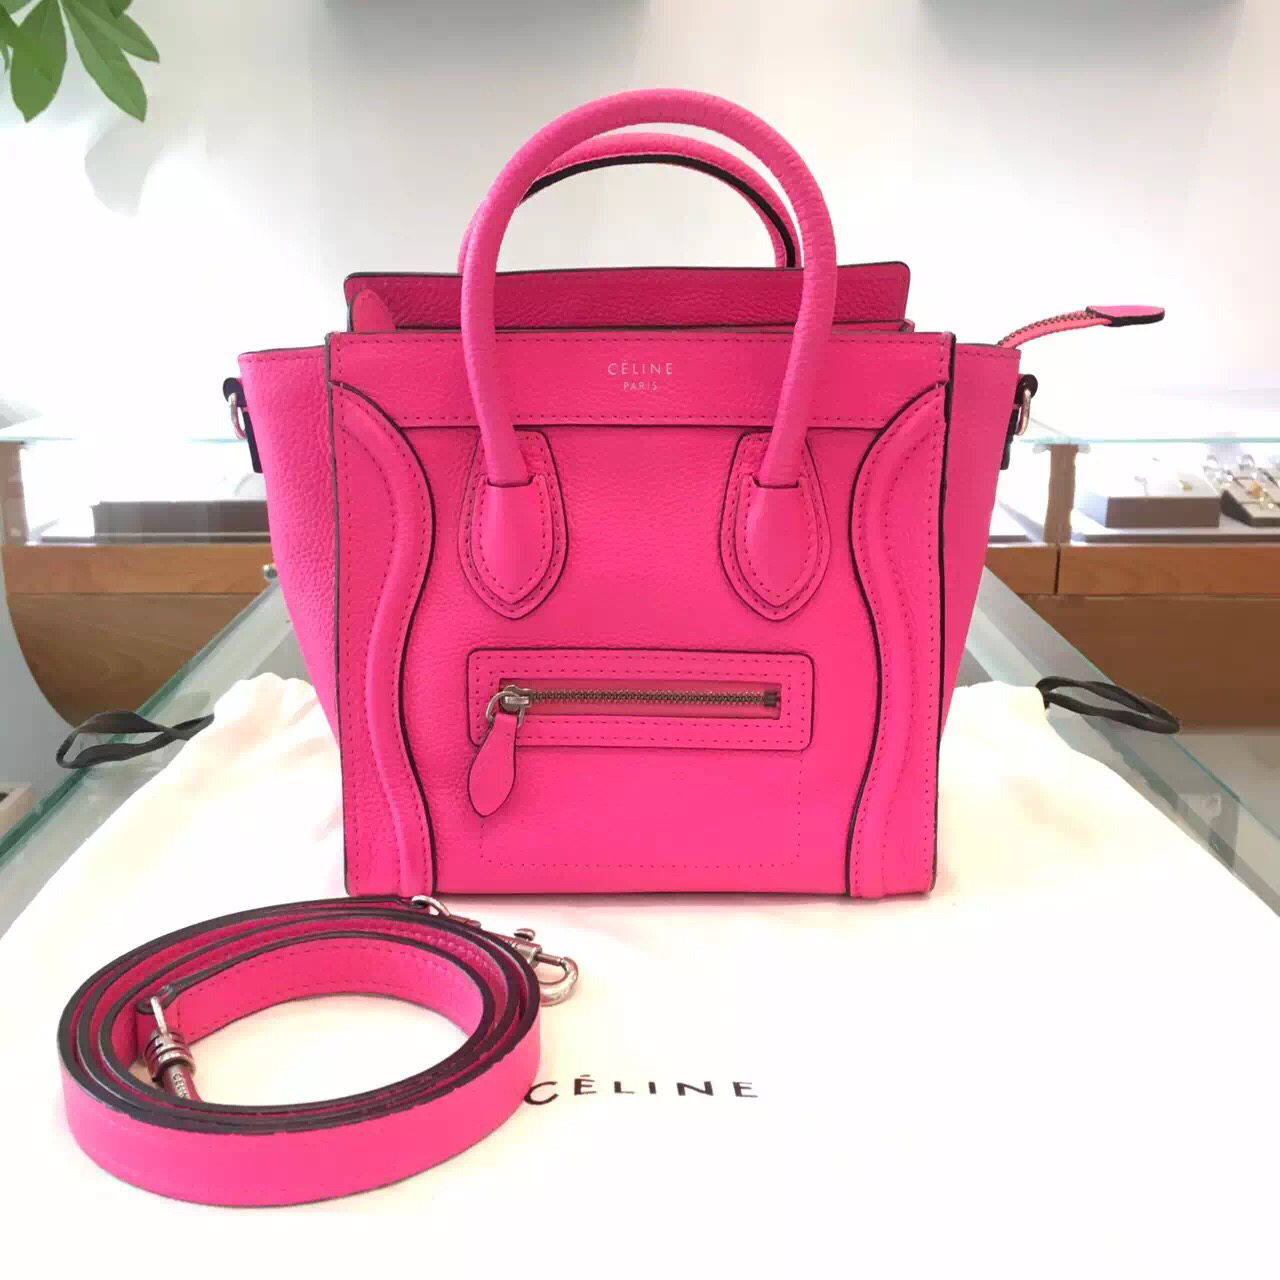 celine black leather bag - 100% Authentic Celine Nano Luggage Tote Bag Neon Pink Pebbled ...